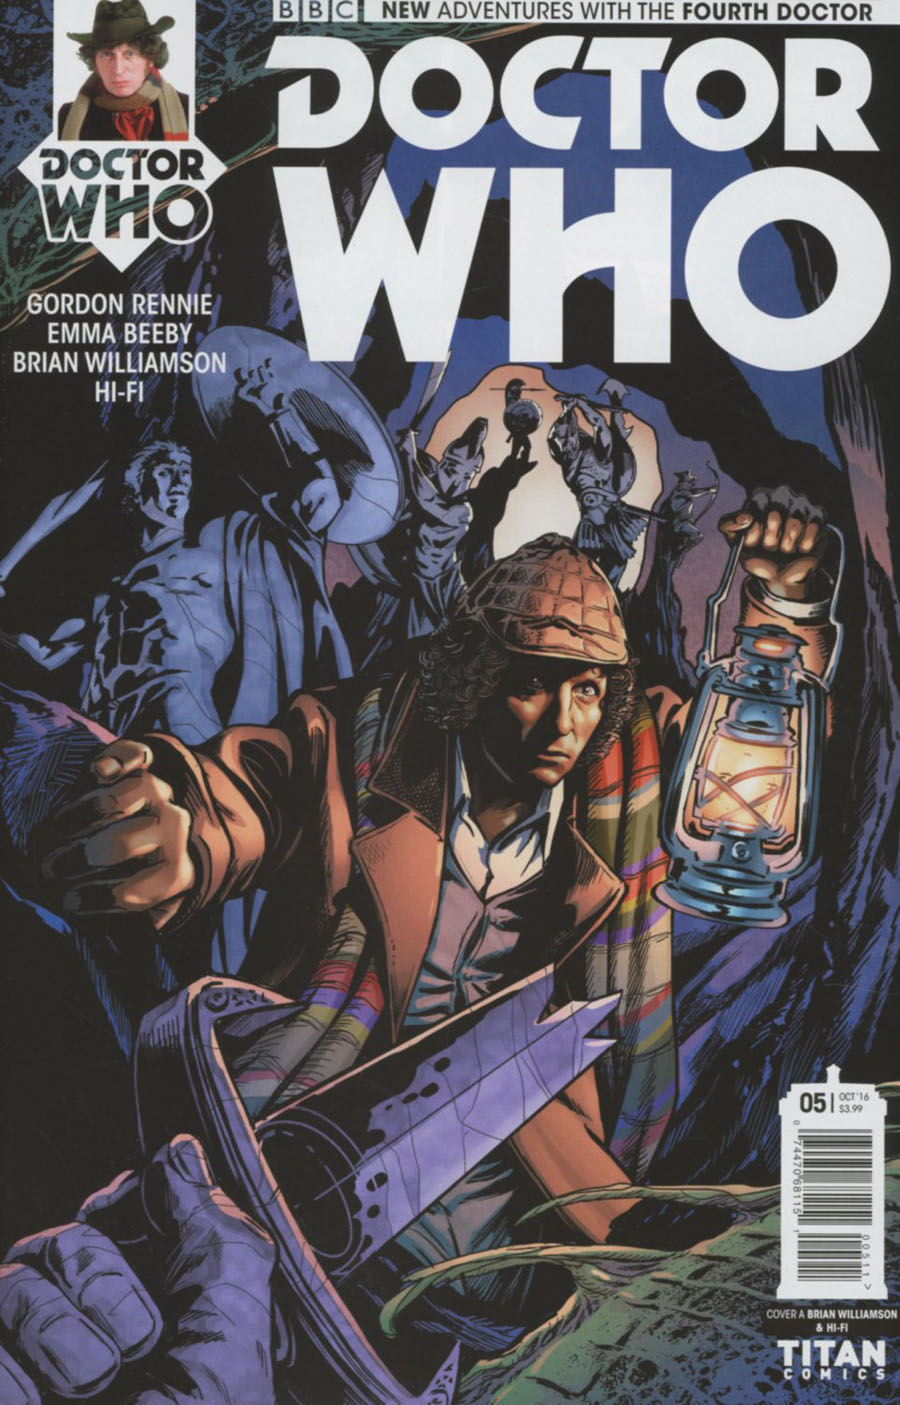 Doctor Who 4th Doctor #5 Cover A Regular Brian Williamson Cover